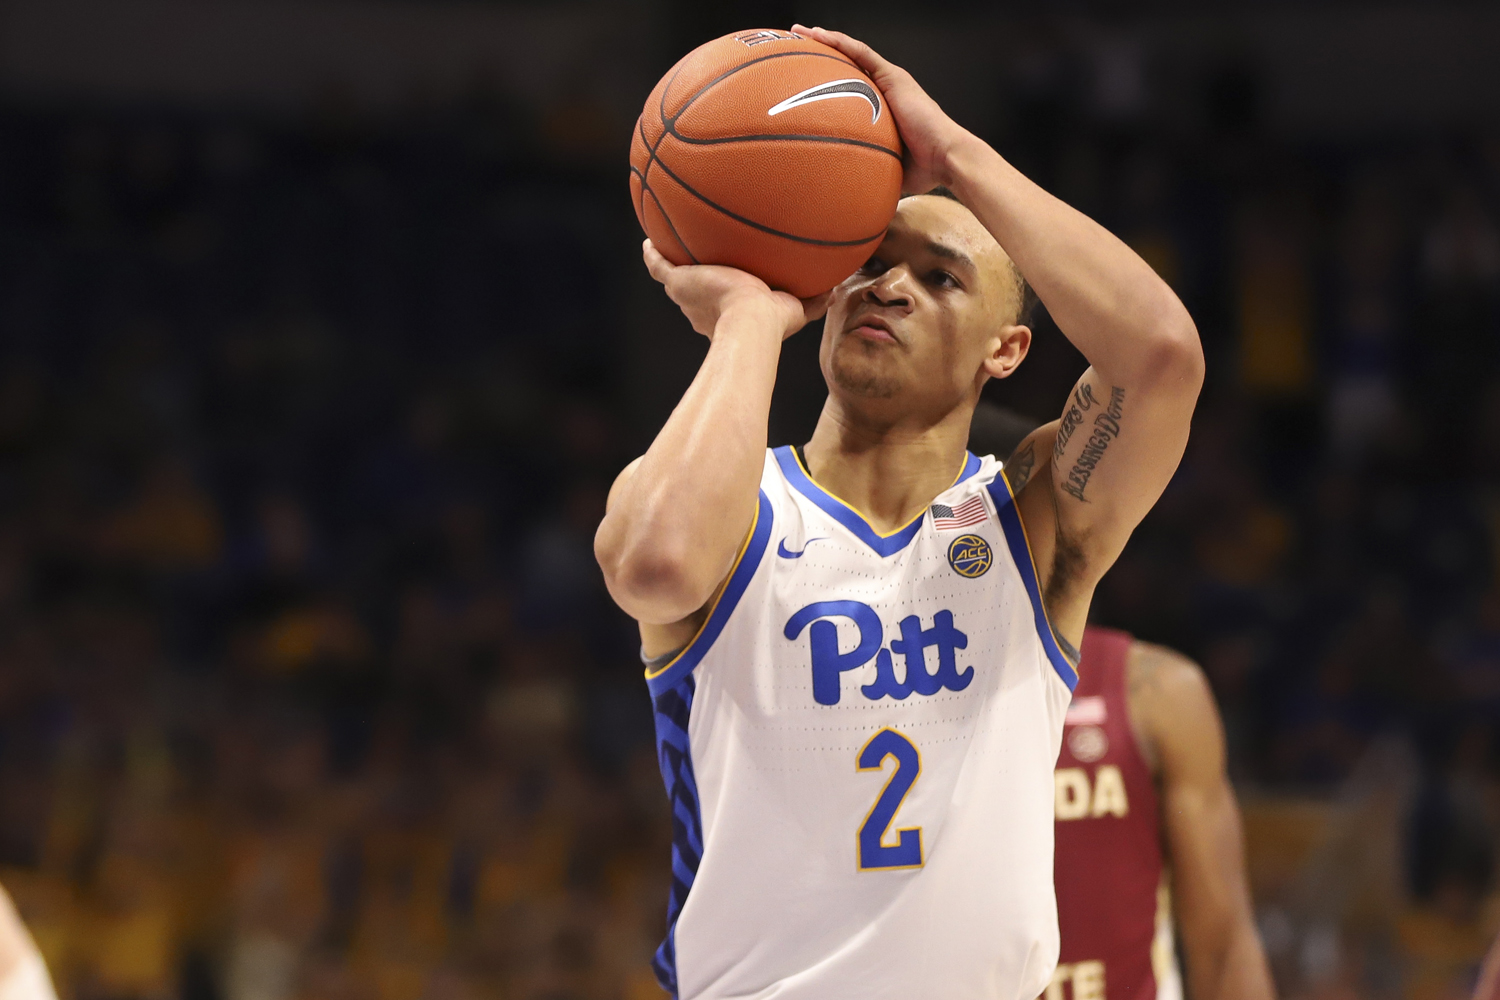 The Pitt men's basketball team opened the season with a victory over No. 10 Florida State only to fall to the little-known Nicholls State the following game.